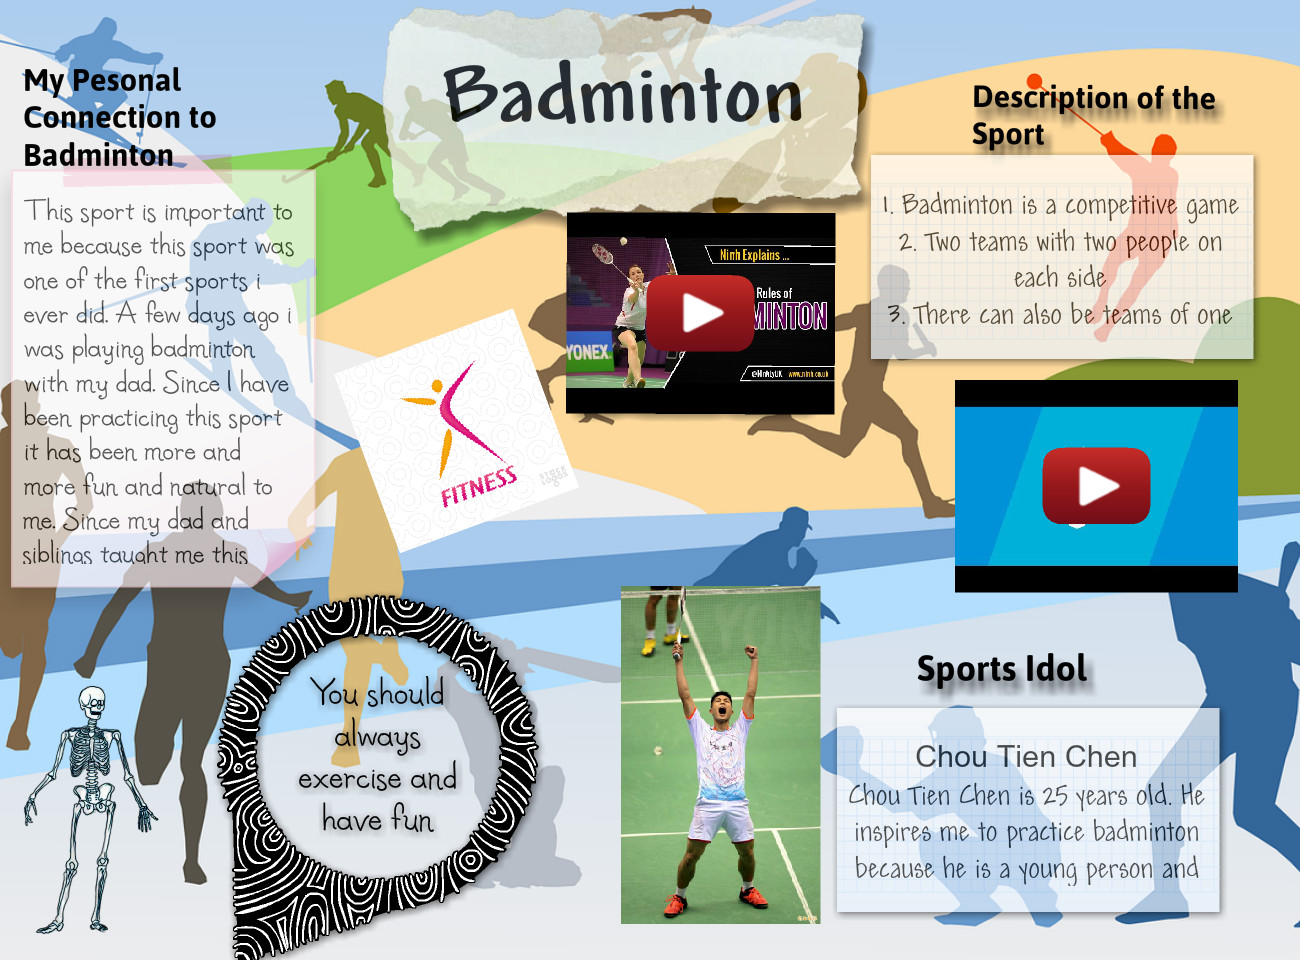 [2015] AHMED RIAD (624-ELA): Sport Reflection Assignment for Physical Education: Badminton